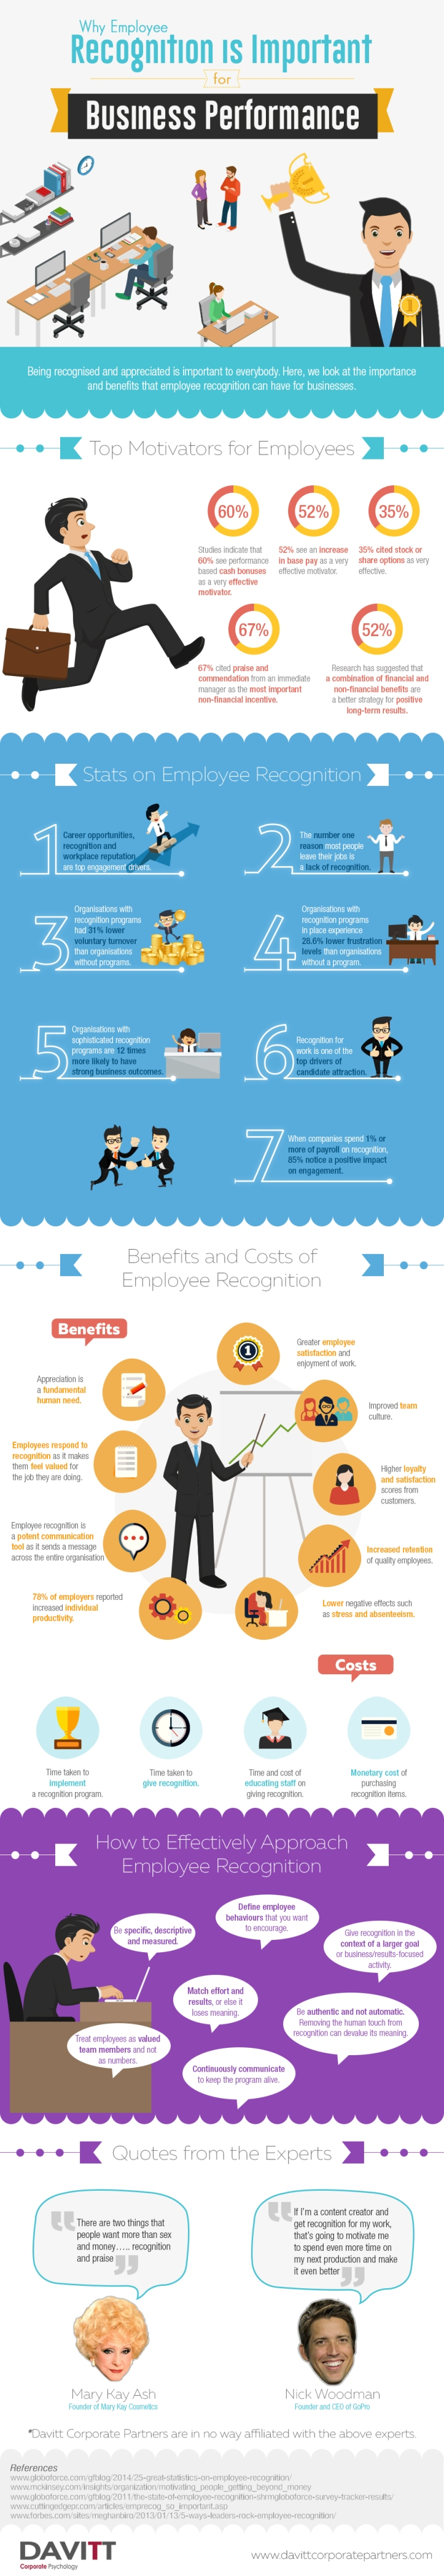 Why Employee Recognition is Important for Business Performance Infographic